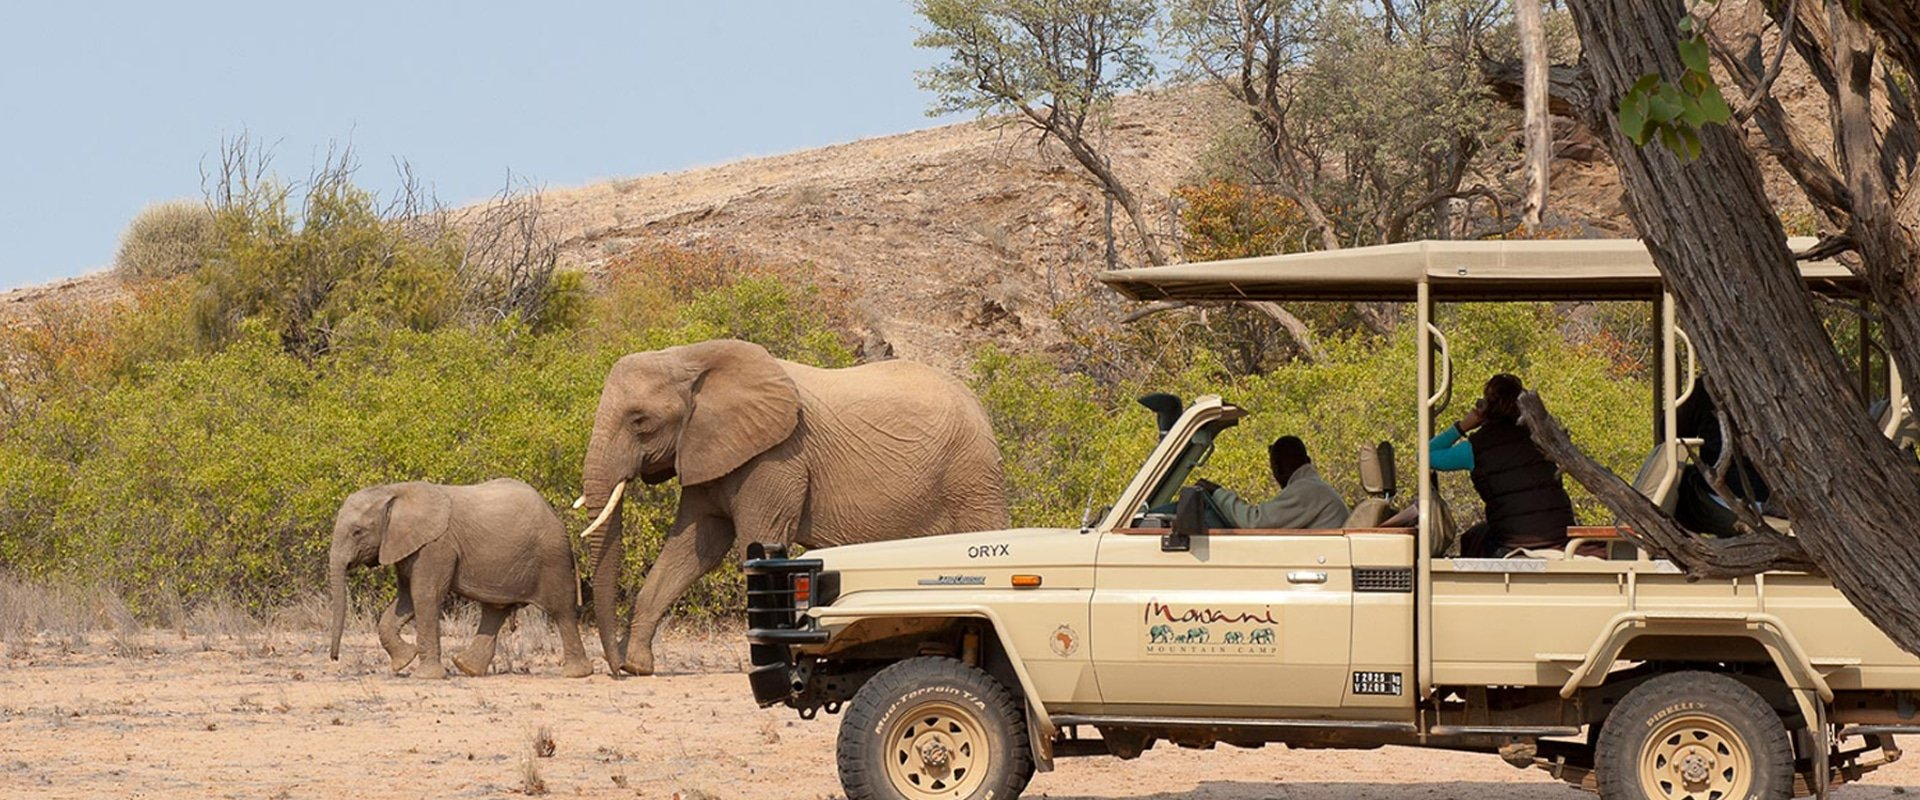 Take in the sites on a game drive